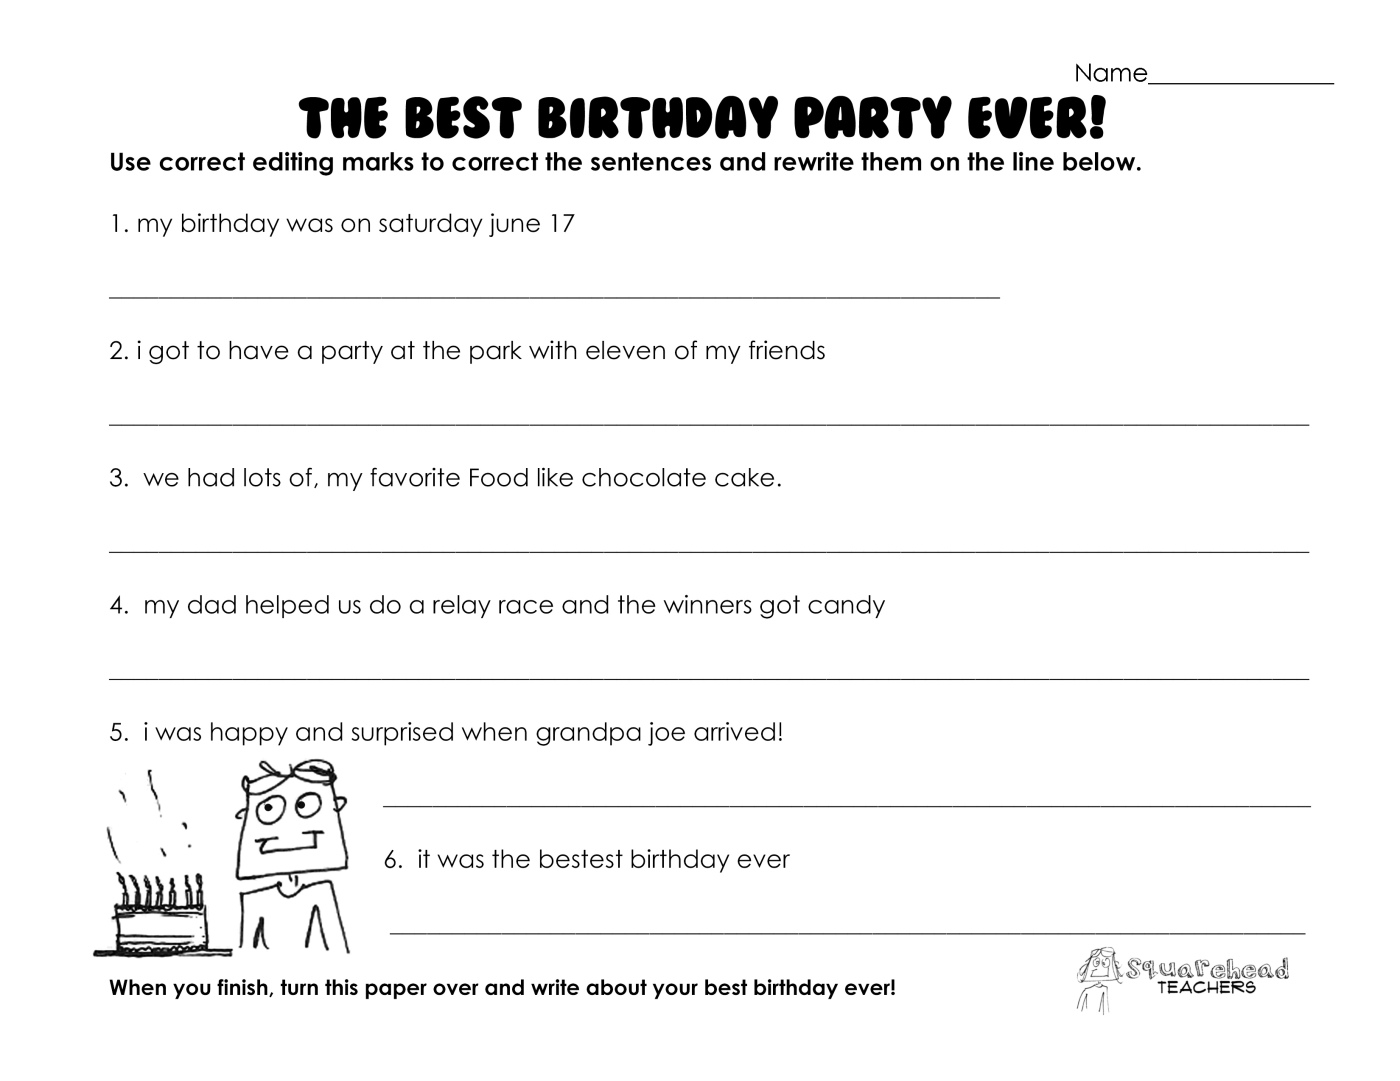 Free Worksheet Grammar Worksheets For 5th Grade best birthday party ever grammar practice worksheet squarehead teachers